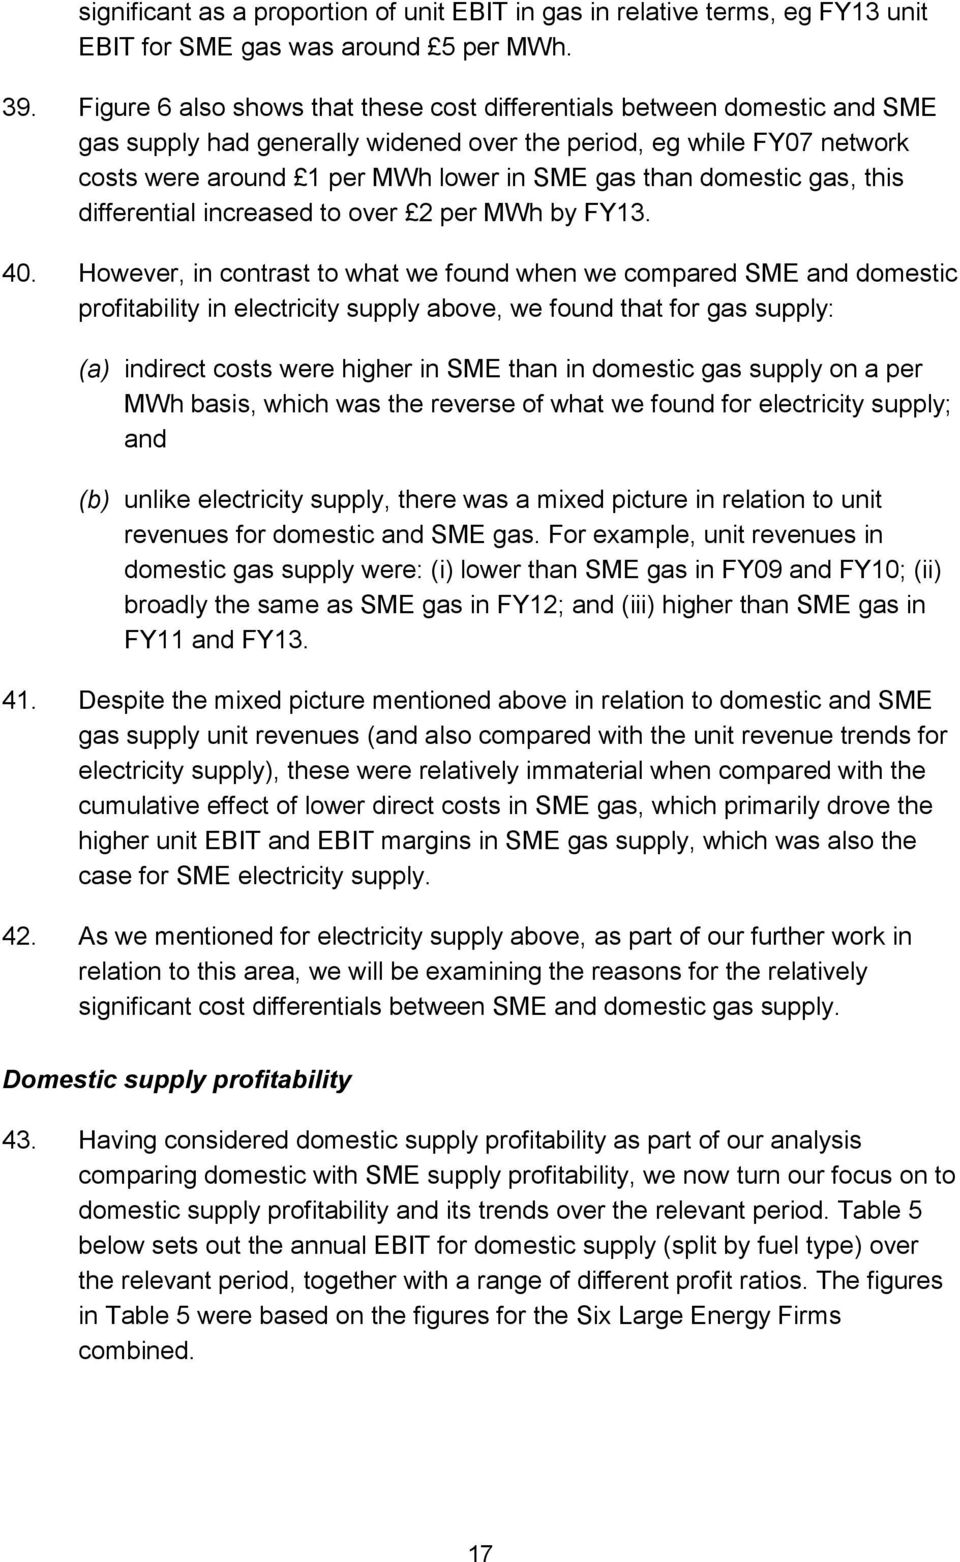 domestic gas, this differential increased to over 2 per MWh by FY13. 40.